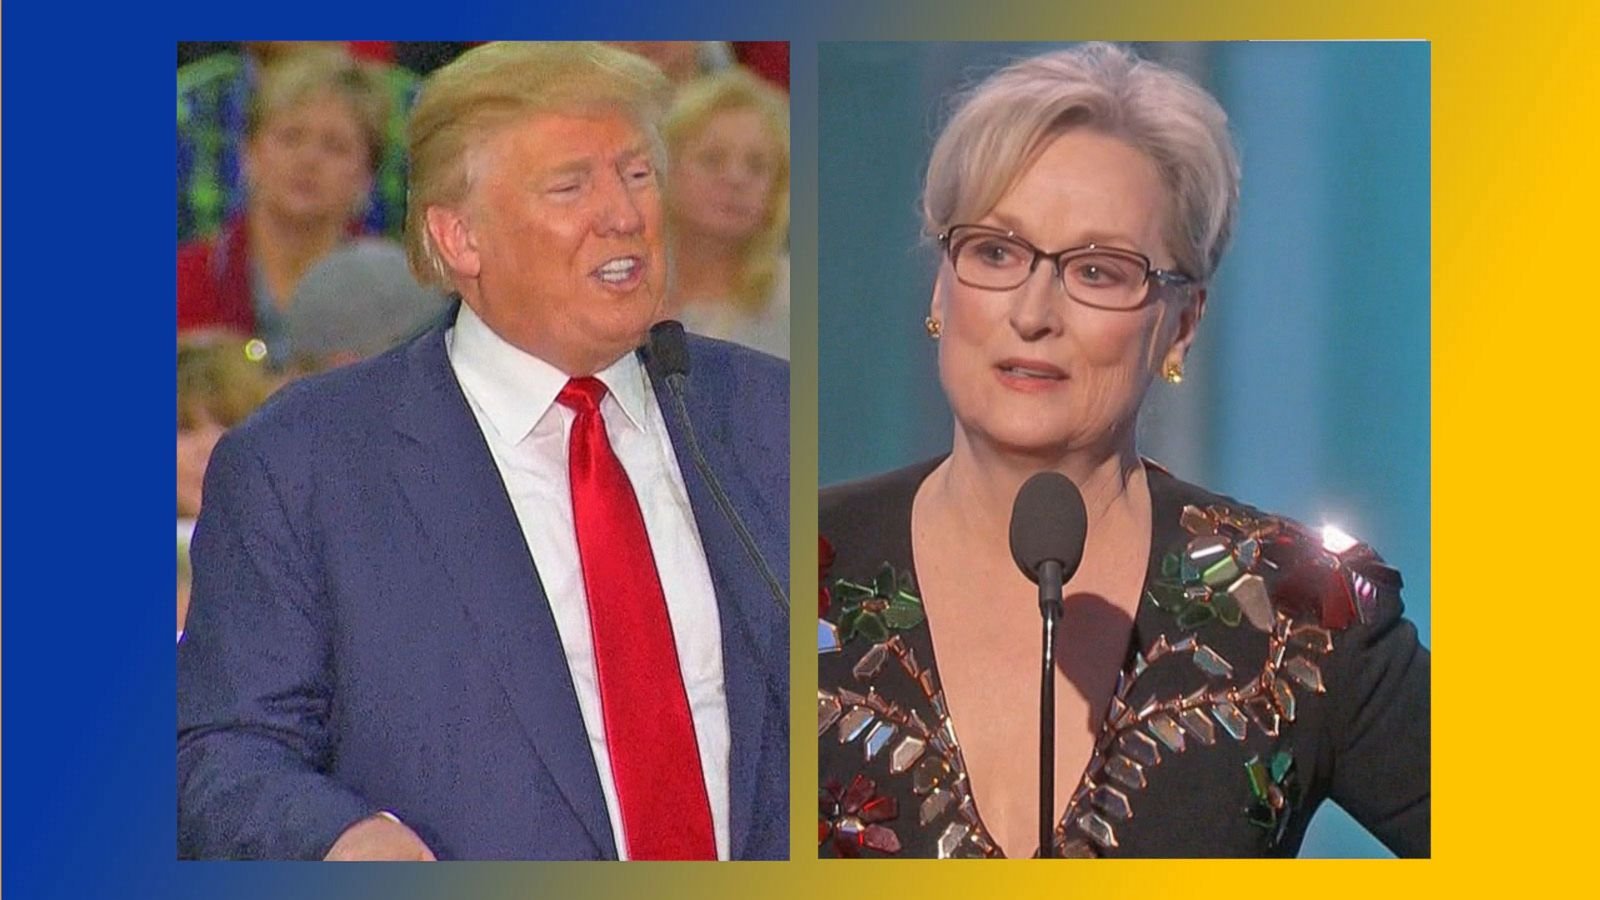 VIDEO: Donald Trump Reacts to Meryl Streeps Criticism of him During Golden Globe Speech